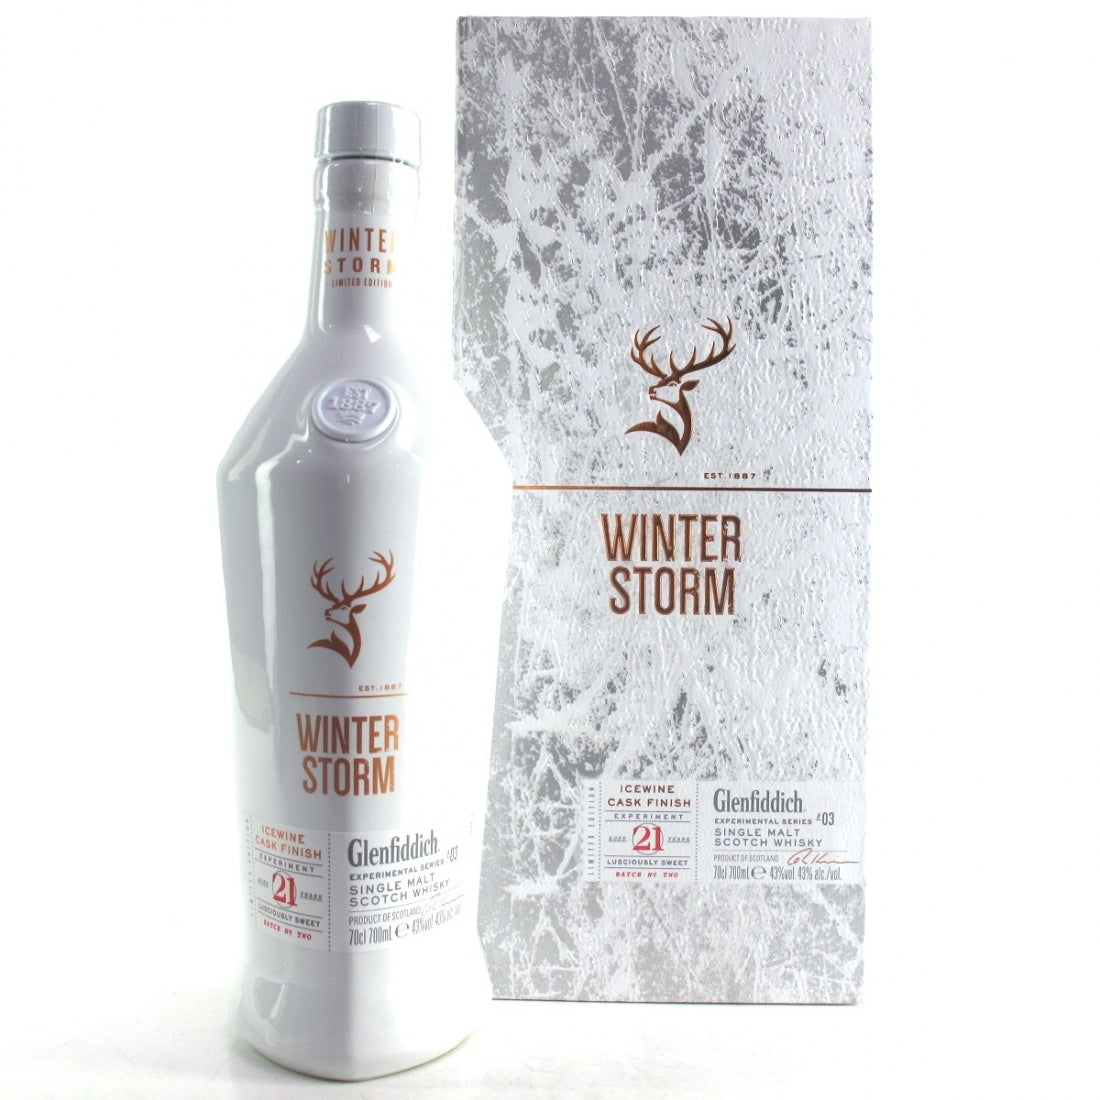 Glenfiddich 21 Years Old Winter Storm Limited Editon Experimental Series 3